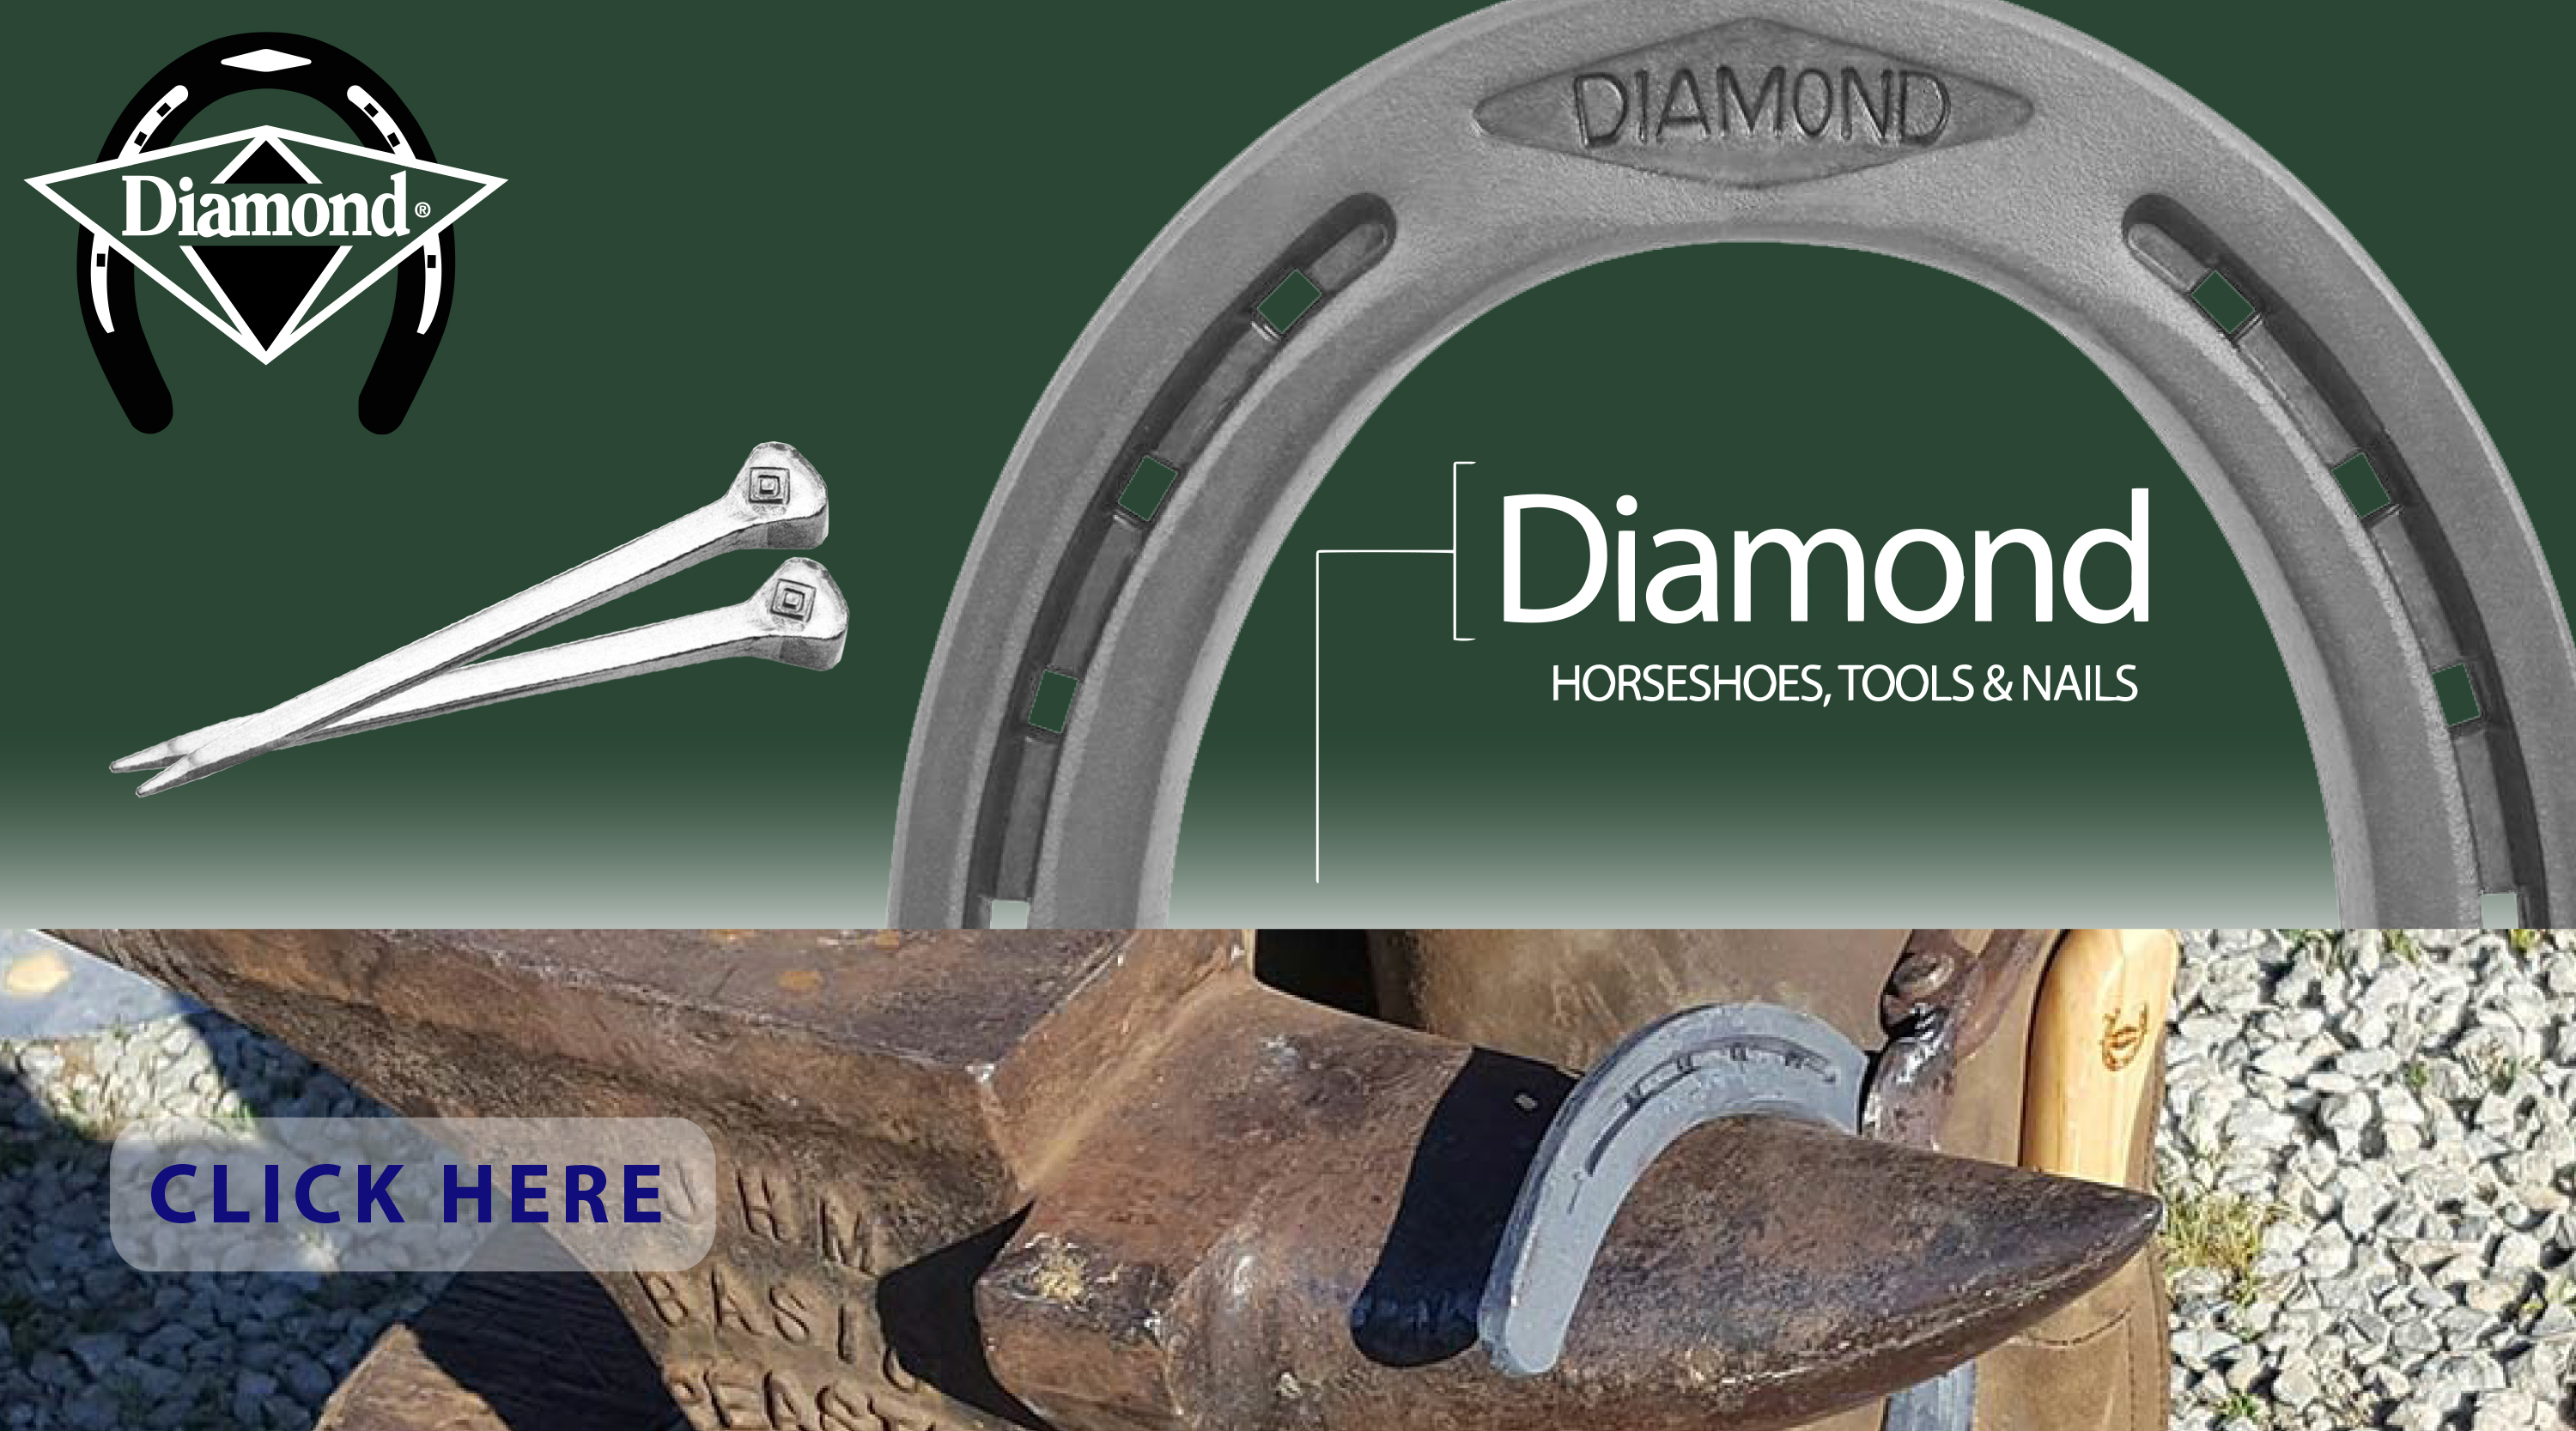 New at JACKS - Diamond Farrier Products